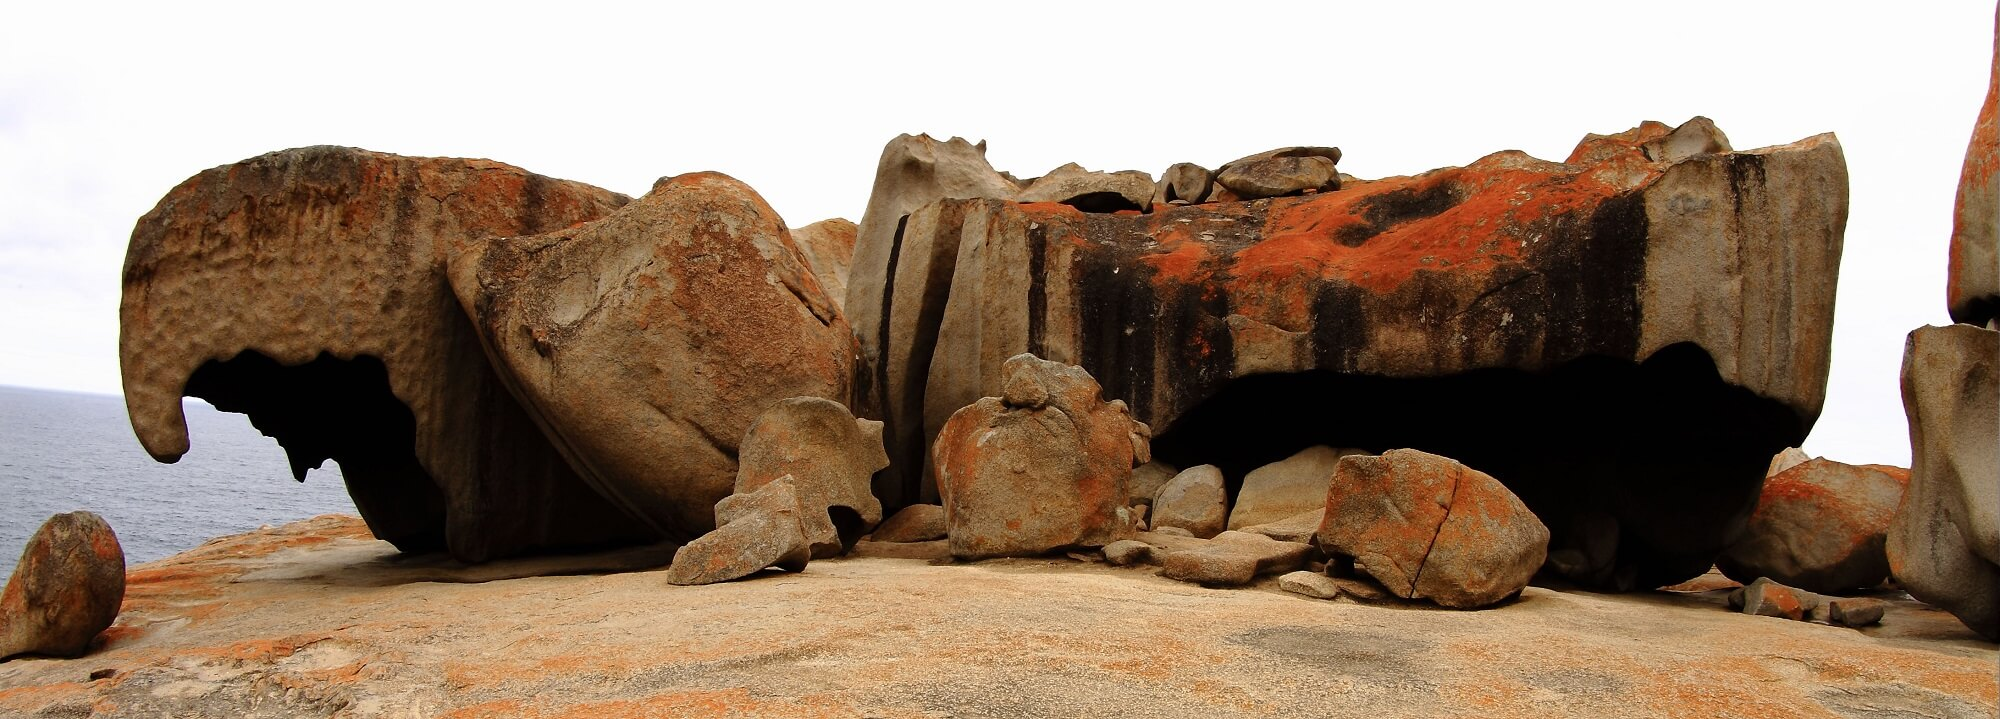 How Were the Remarkable Rocks Formed?